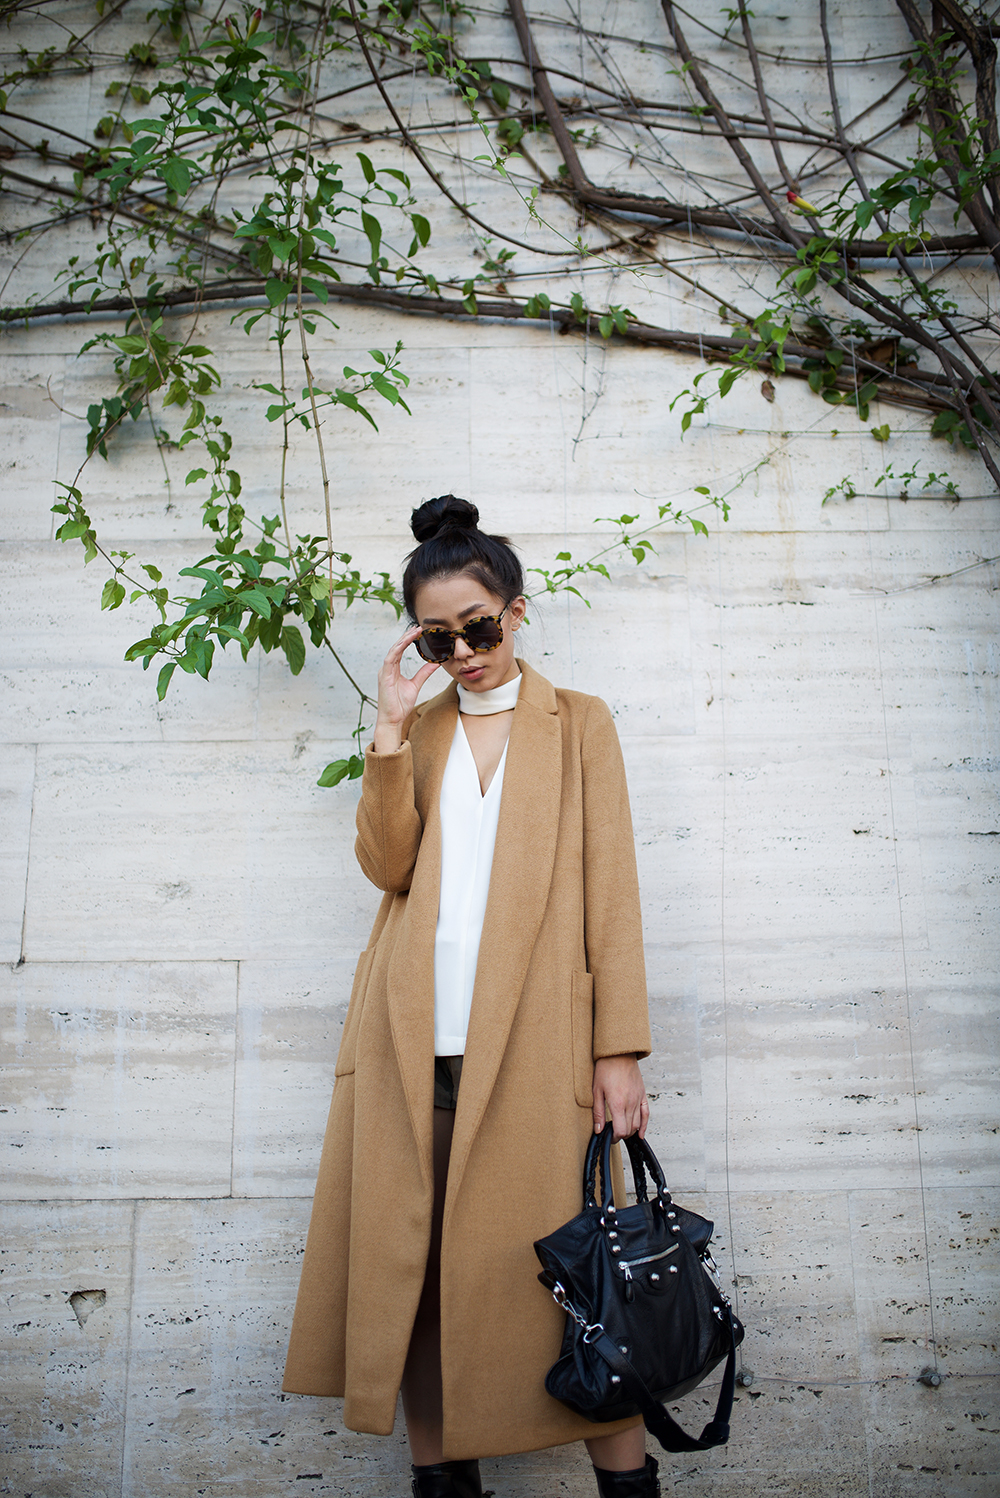 Neon Blush, Topshop, winter coats, long duster coats, camel woolen coats